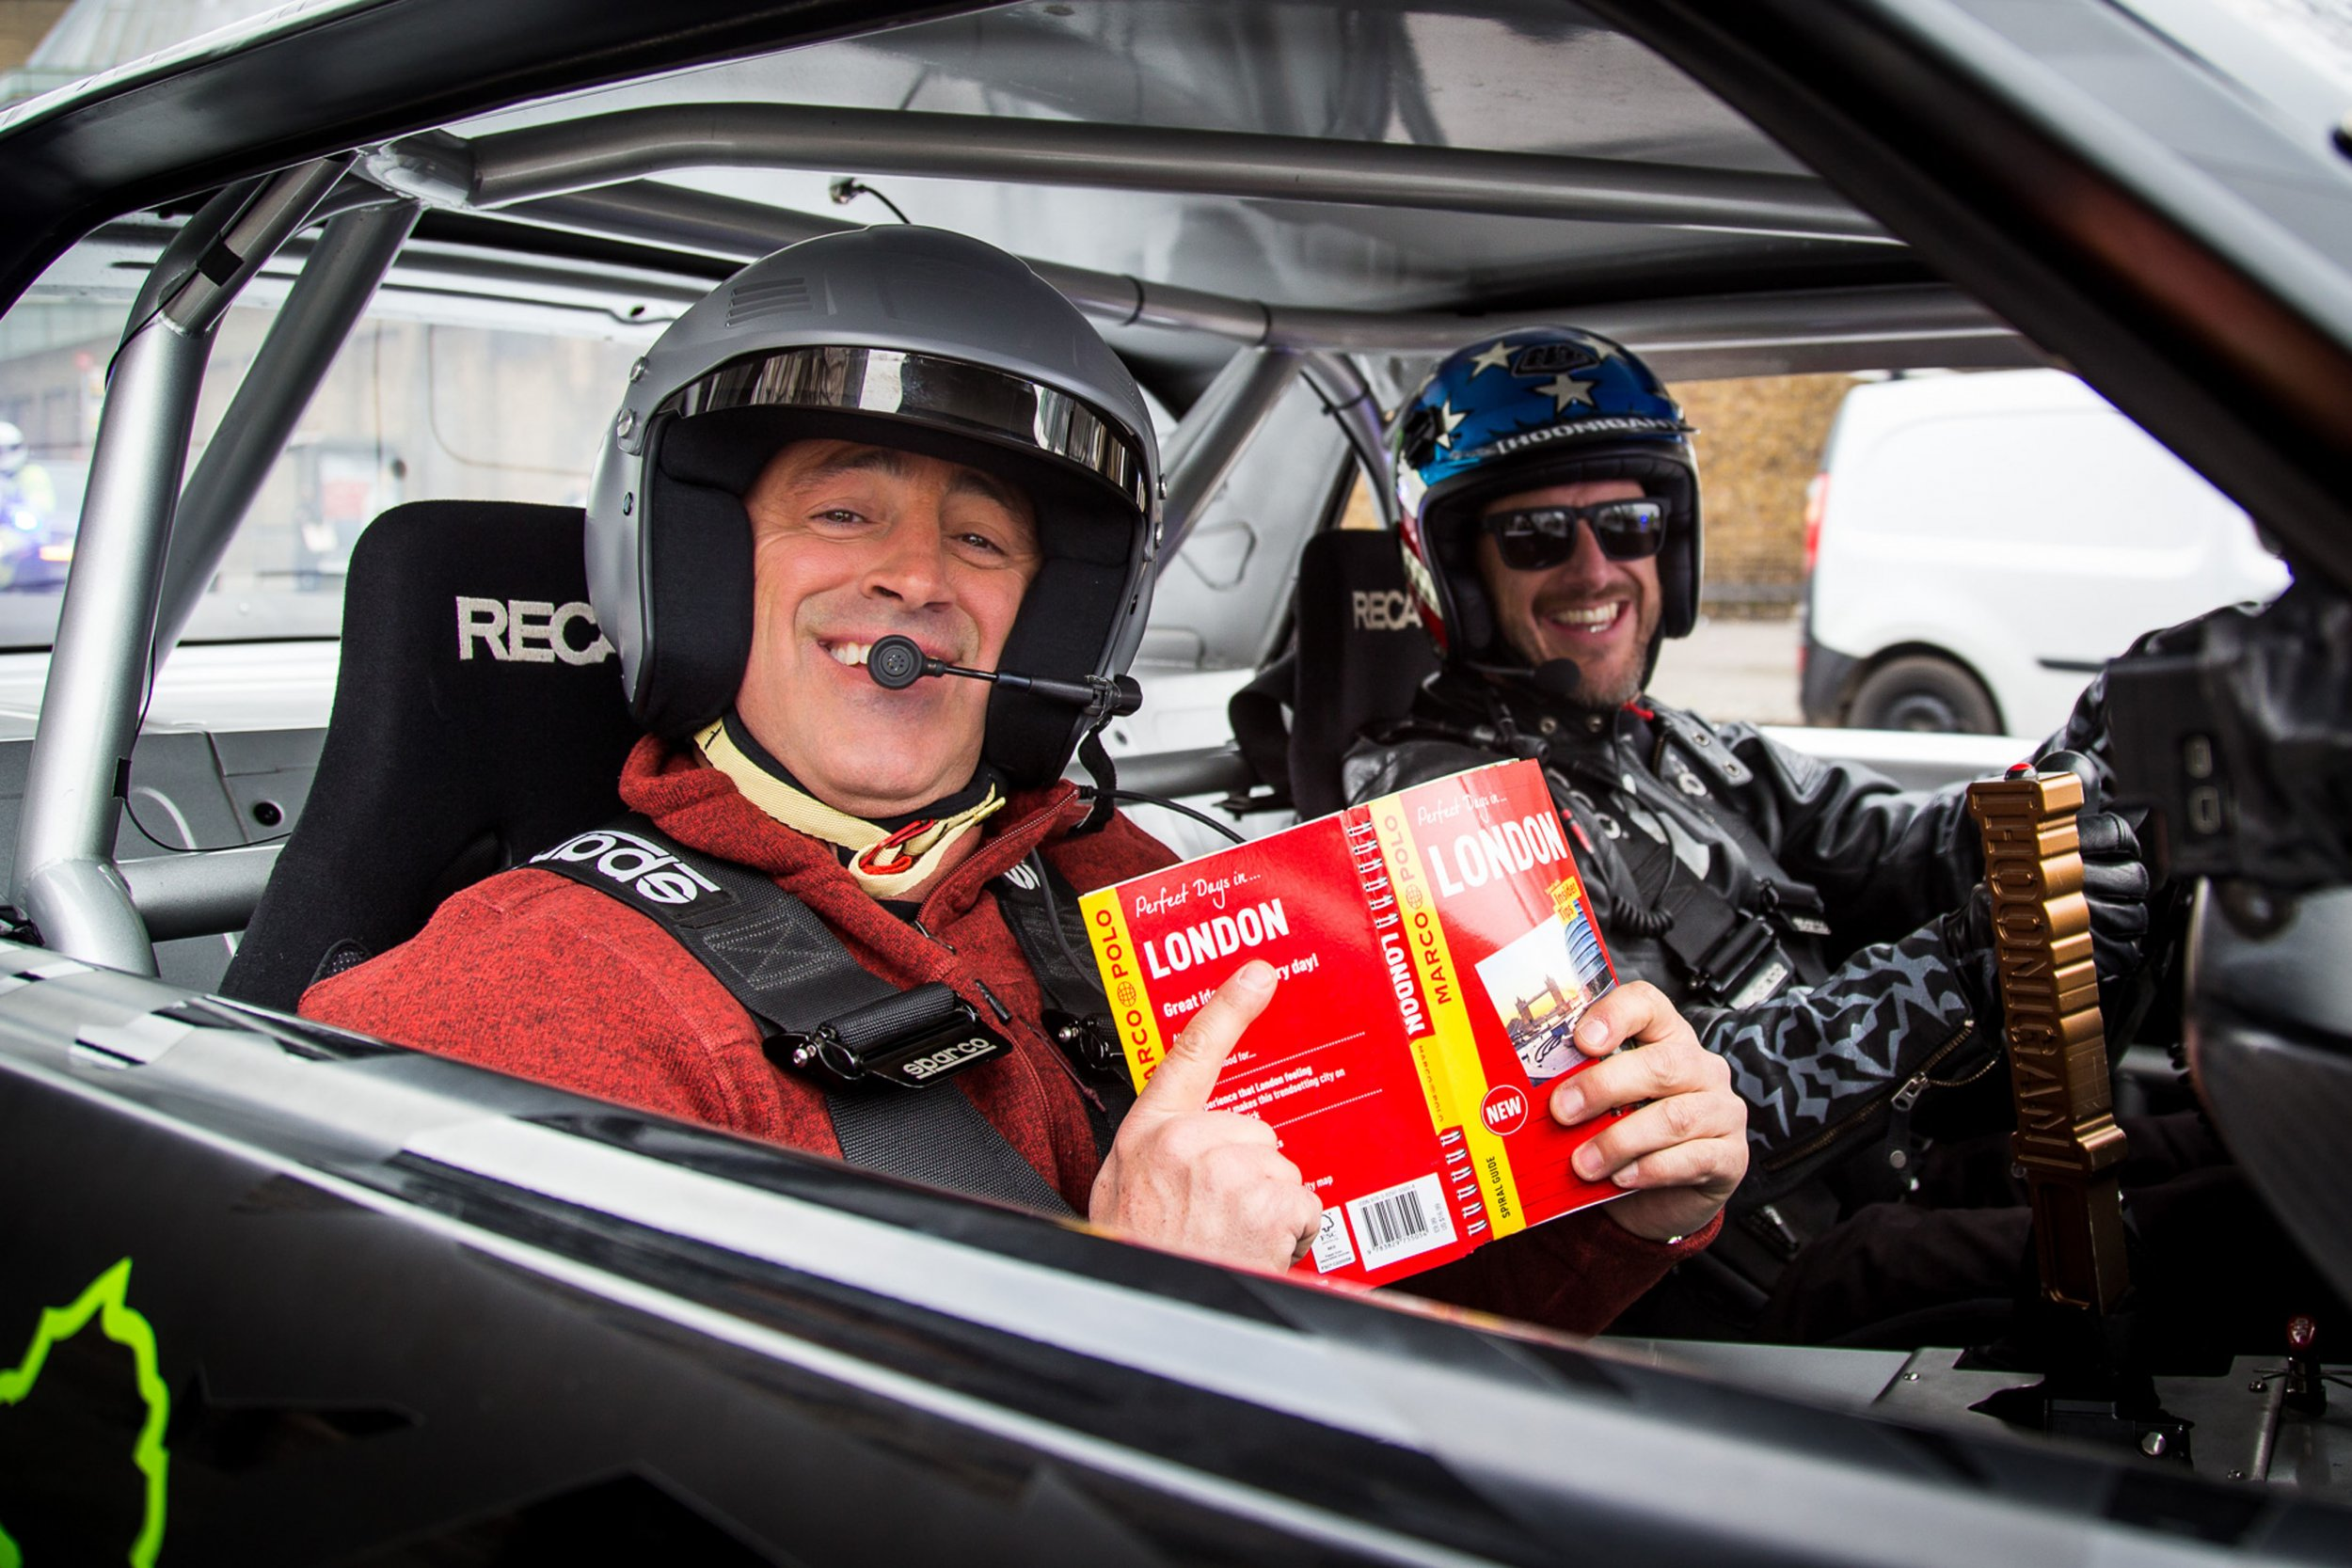 10671308-high_res-top-gear-2016